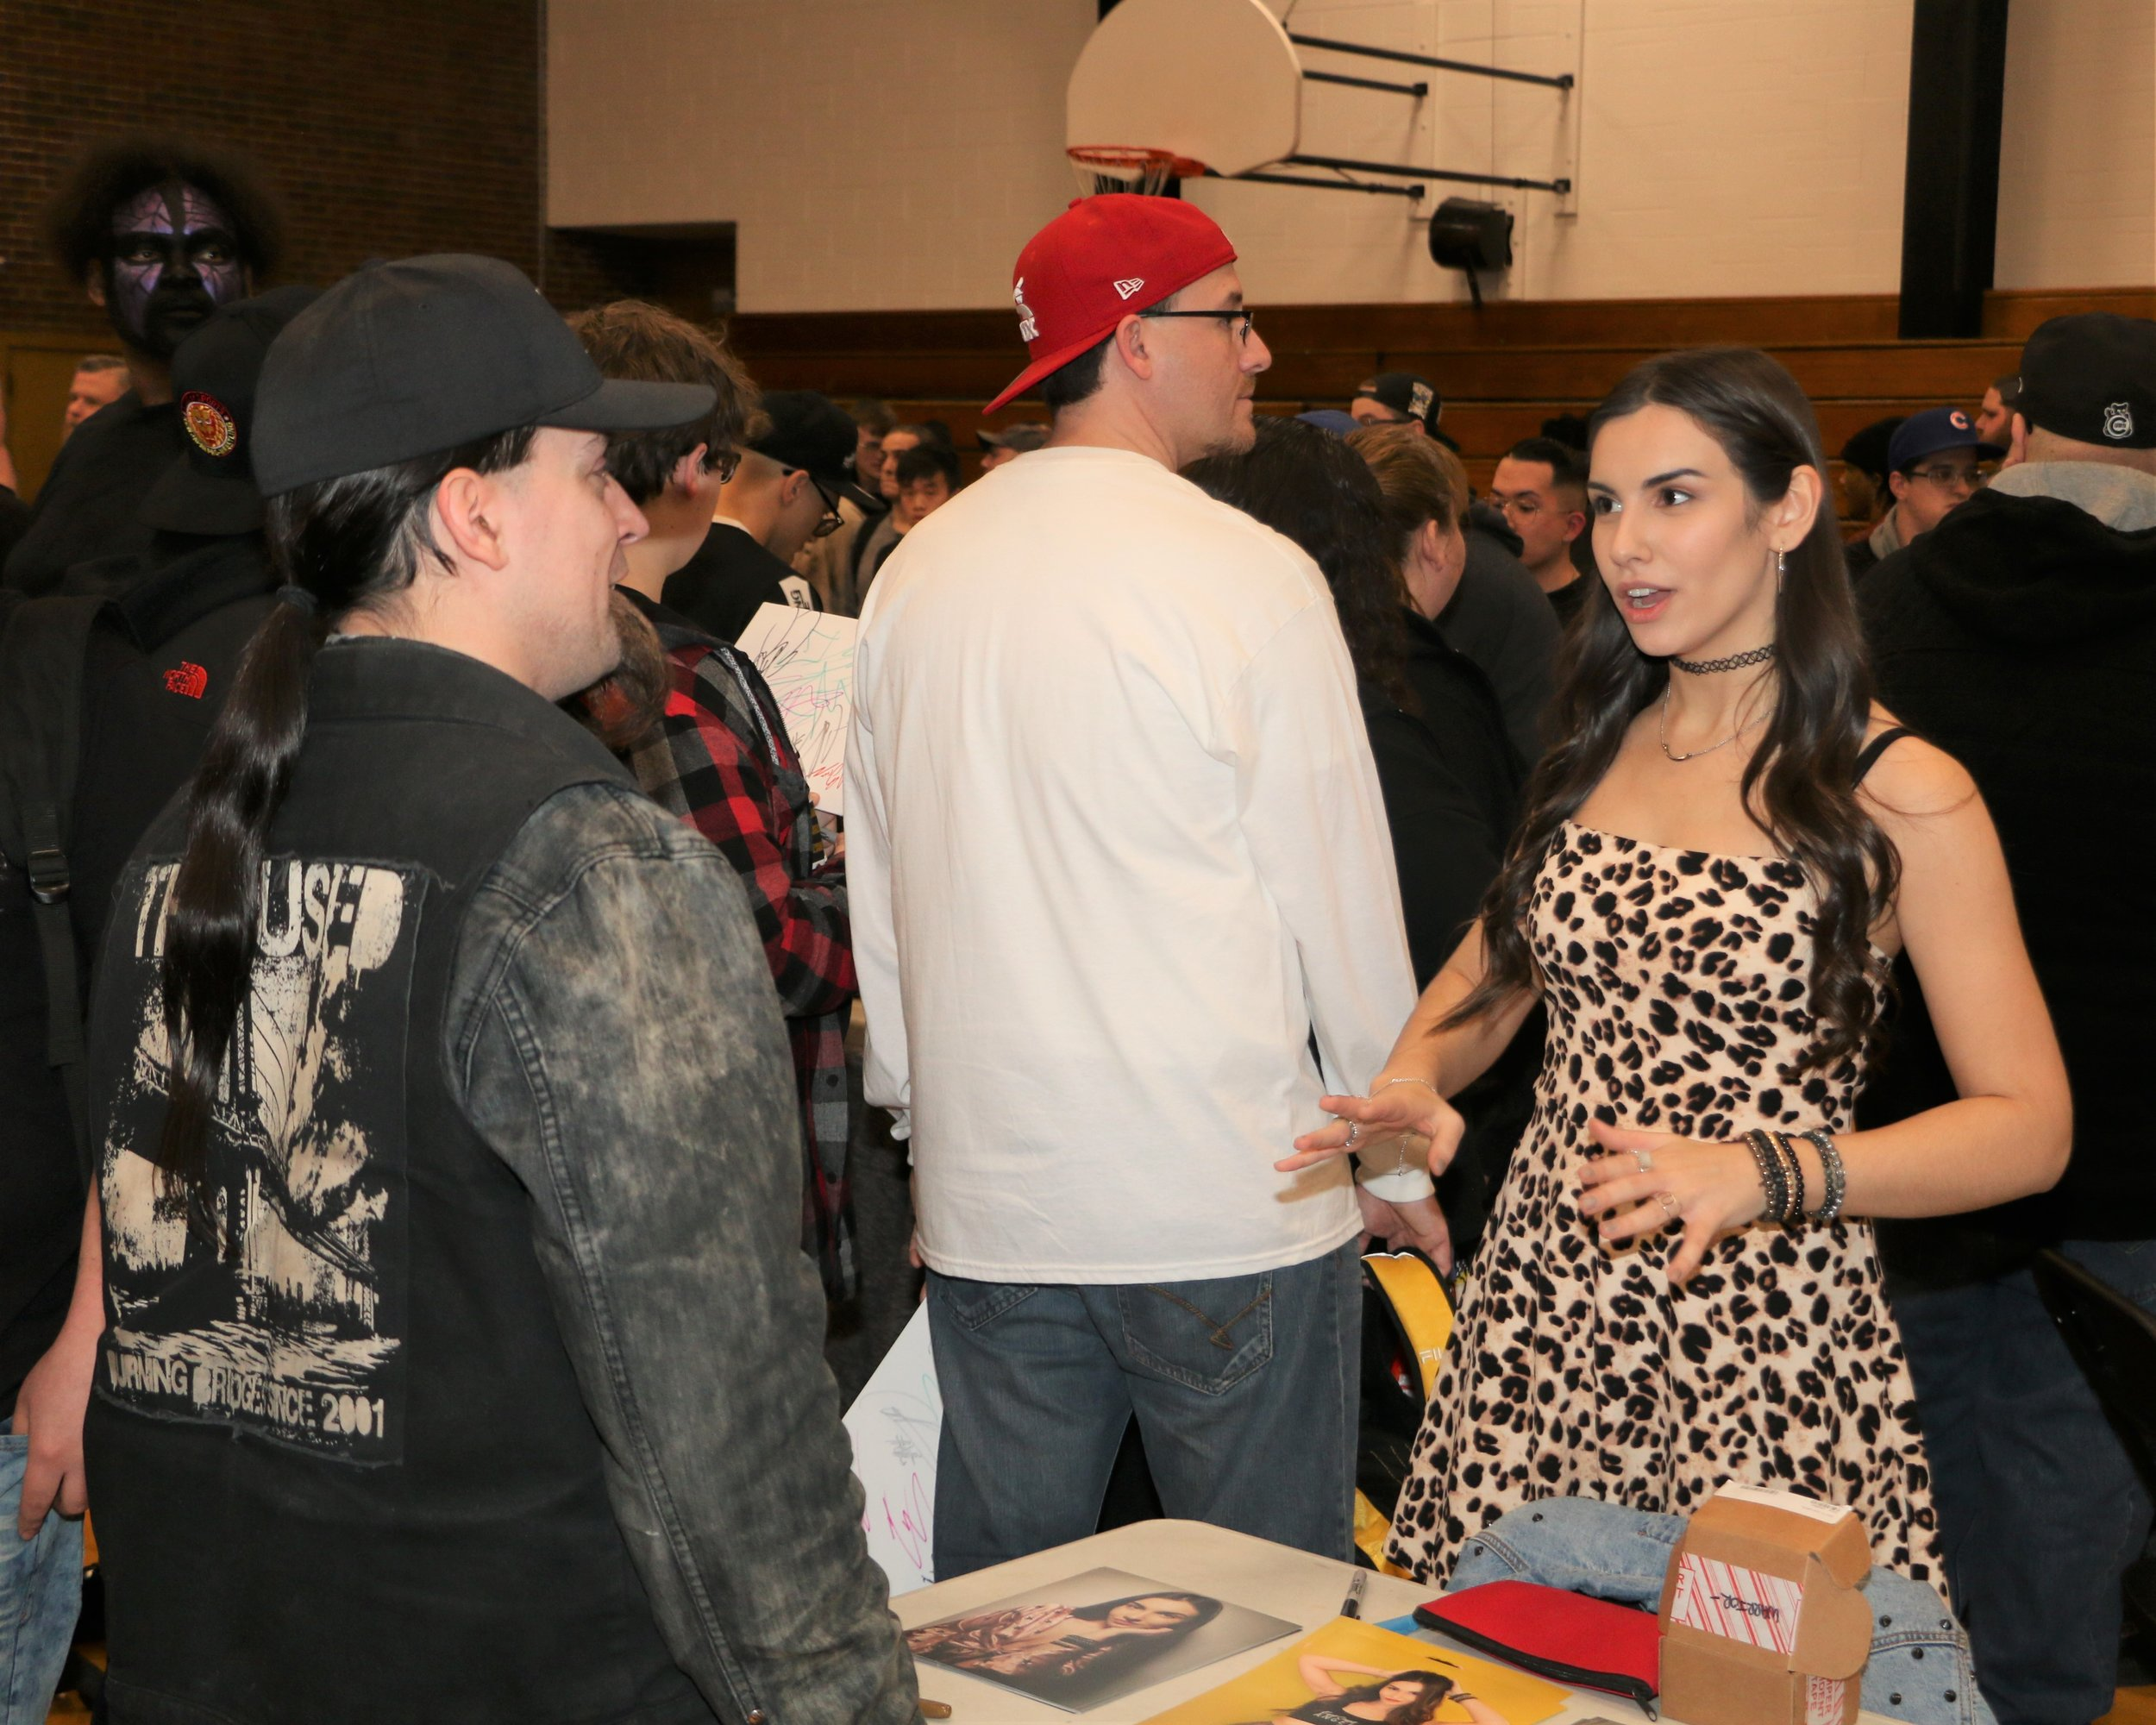 Alicia Atout talks with a fan during the VIP Fan Fest.